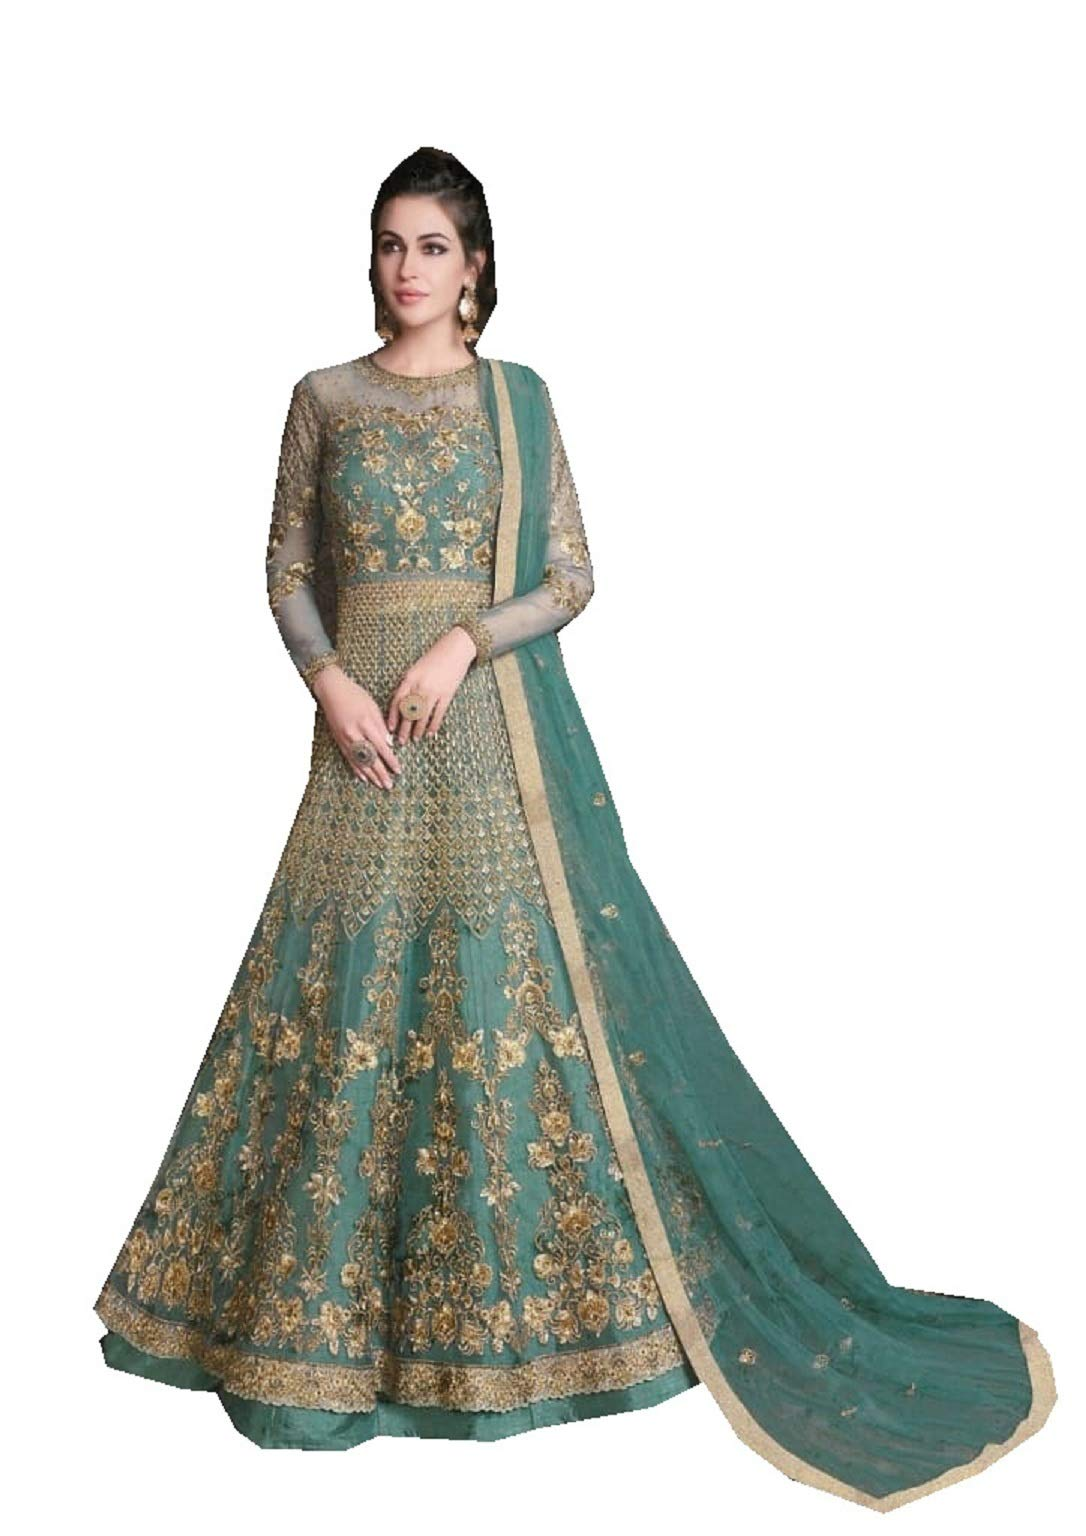 New Indian/Pakistani Ethnic wear Anarkali Gown RAZEE 10019 (Sky Blue, M-40)